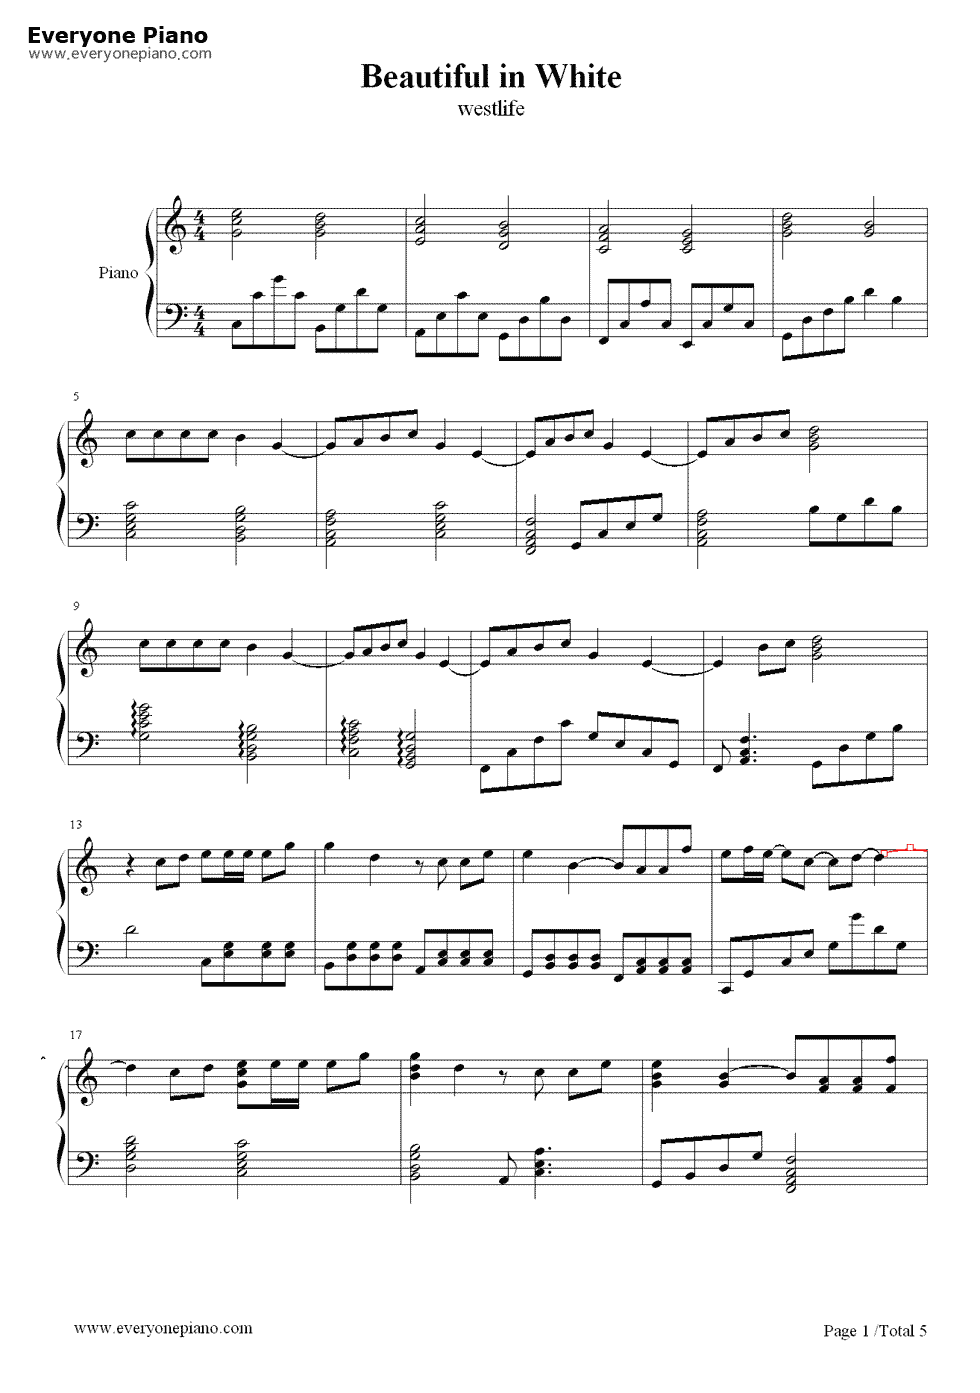 Beautiful In White Westlife Stave Preview 1 Piano Sheet Music Free Music Notes Song Sheet